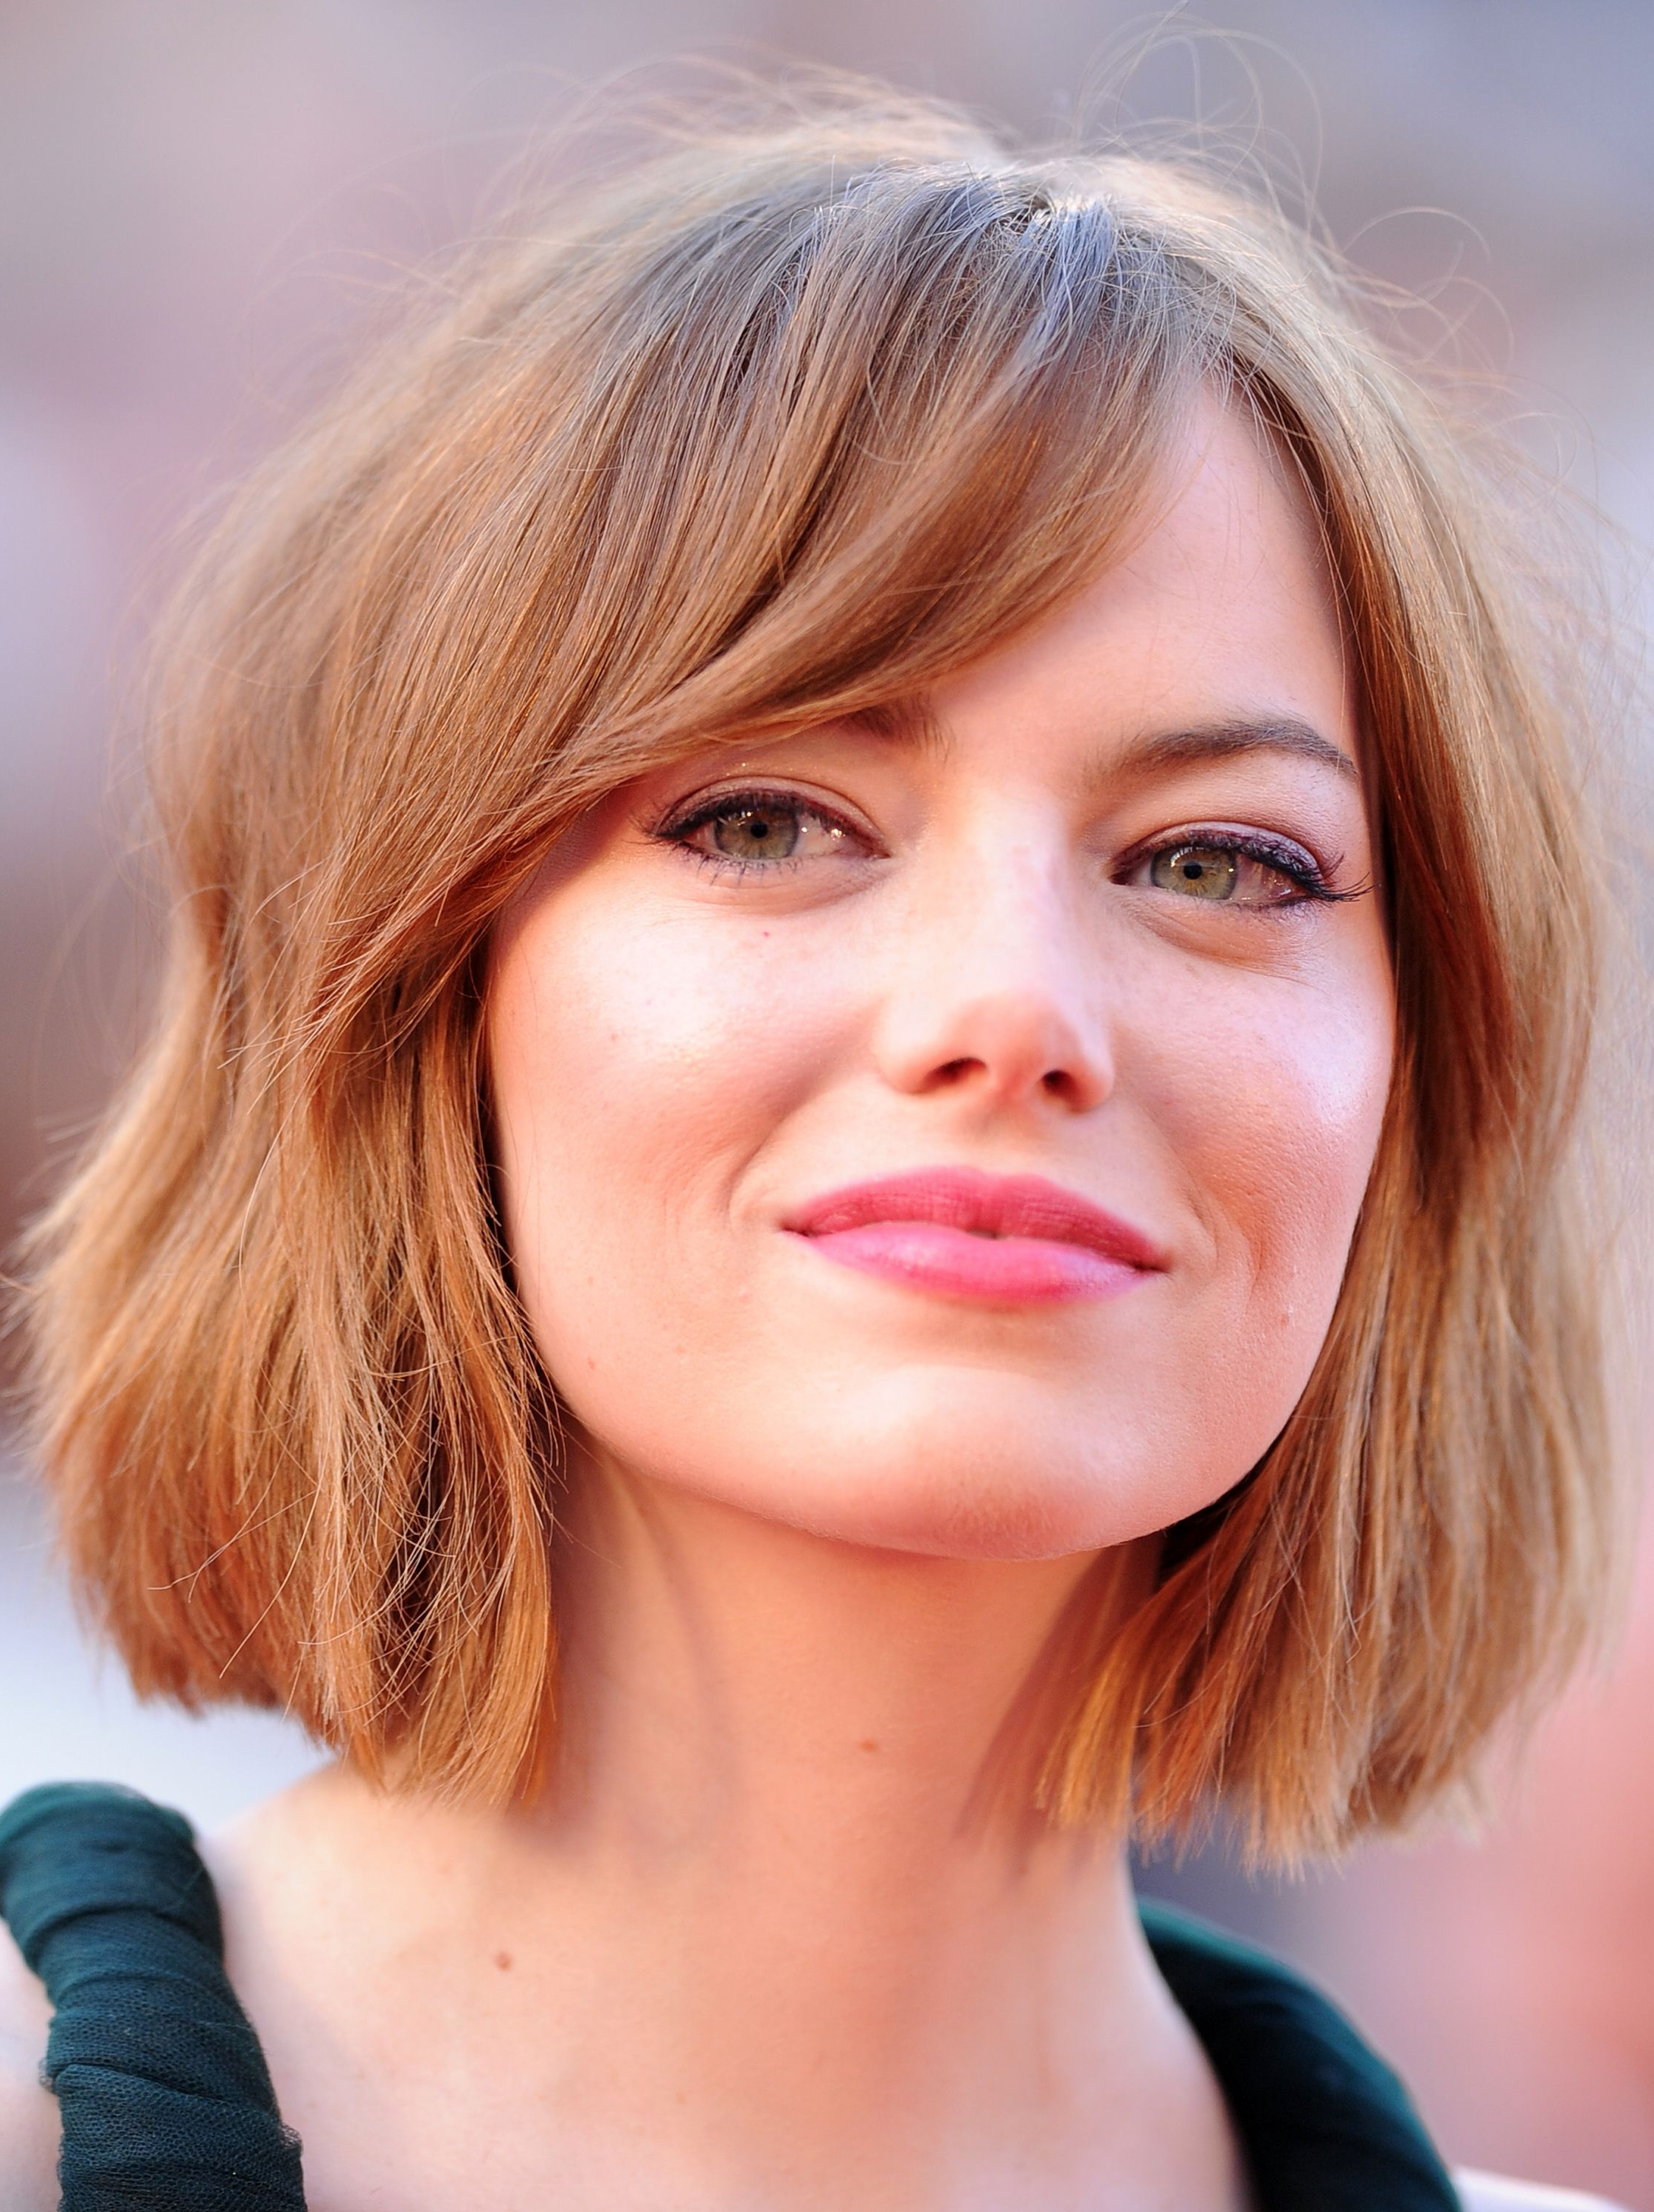 Bob Hairstyles For 2018 – 53 Short Haircut Trends To Try Now Throughout Lauren Conrad Short Hairstyles (View 13 of 25)